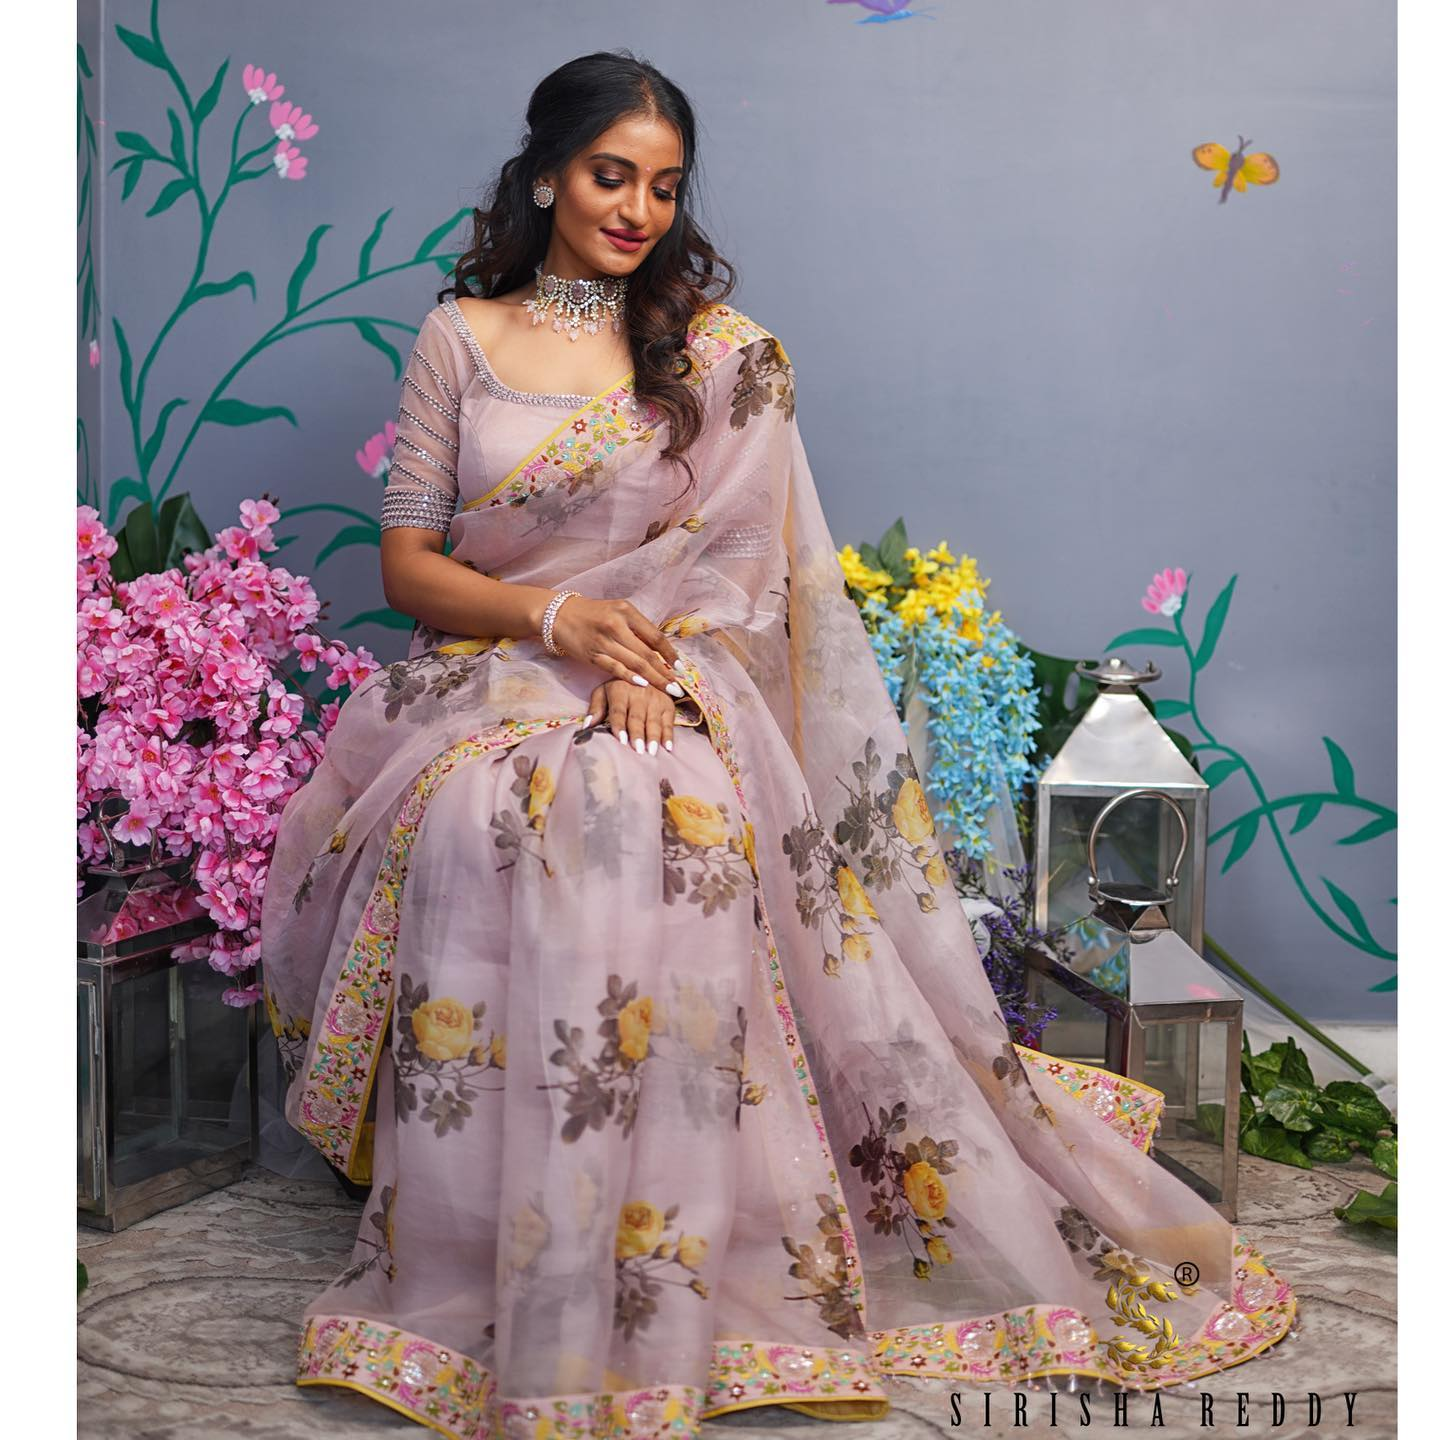 Onion pink silk organza printed saree with thread work glass beads and sequin work border made to show the 6yards saree more beautiful. 2021-10-18